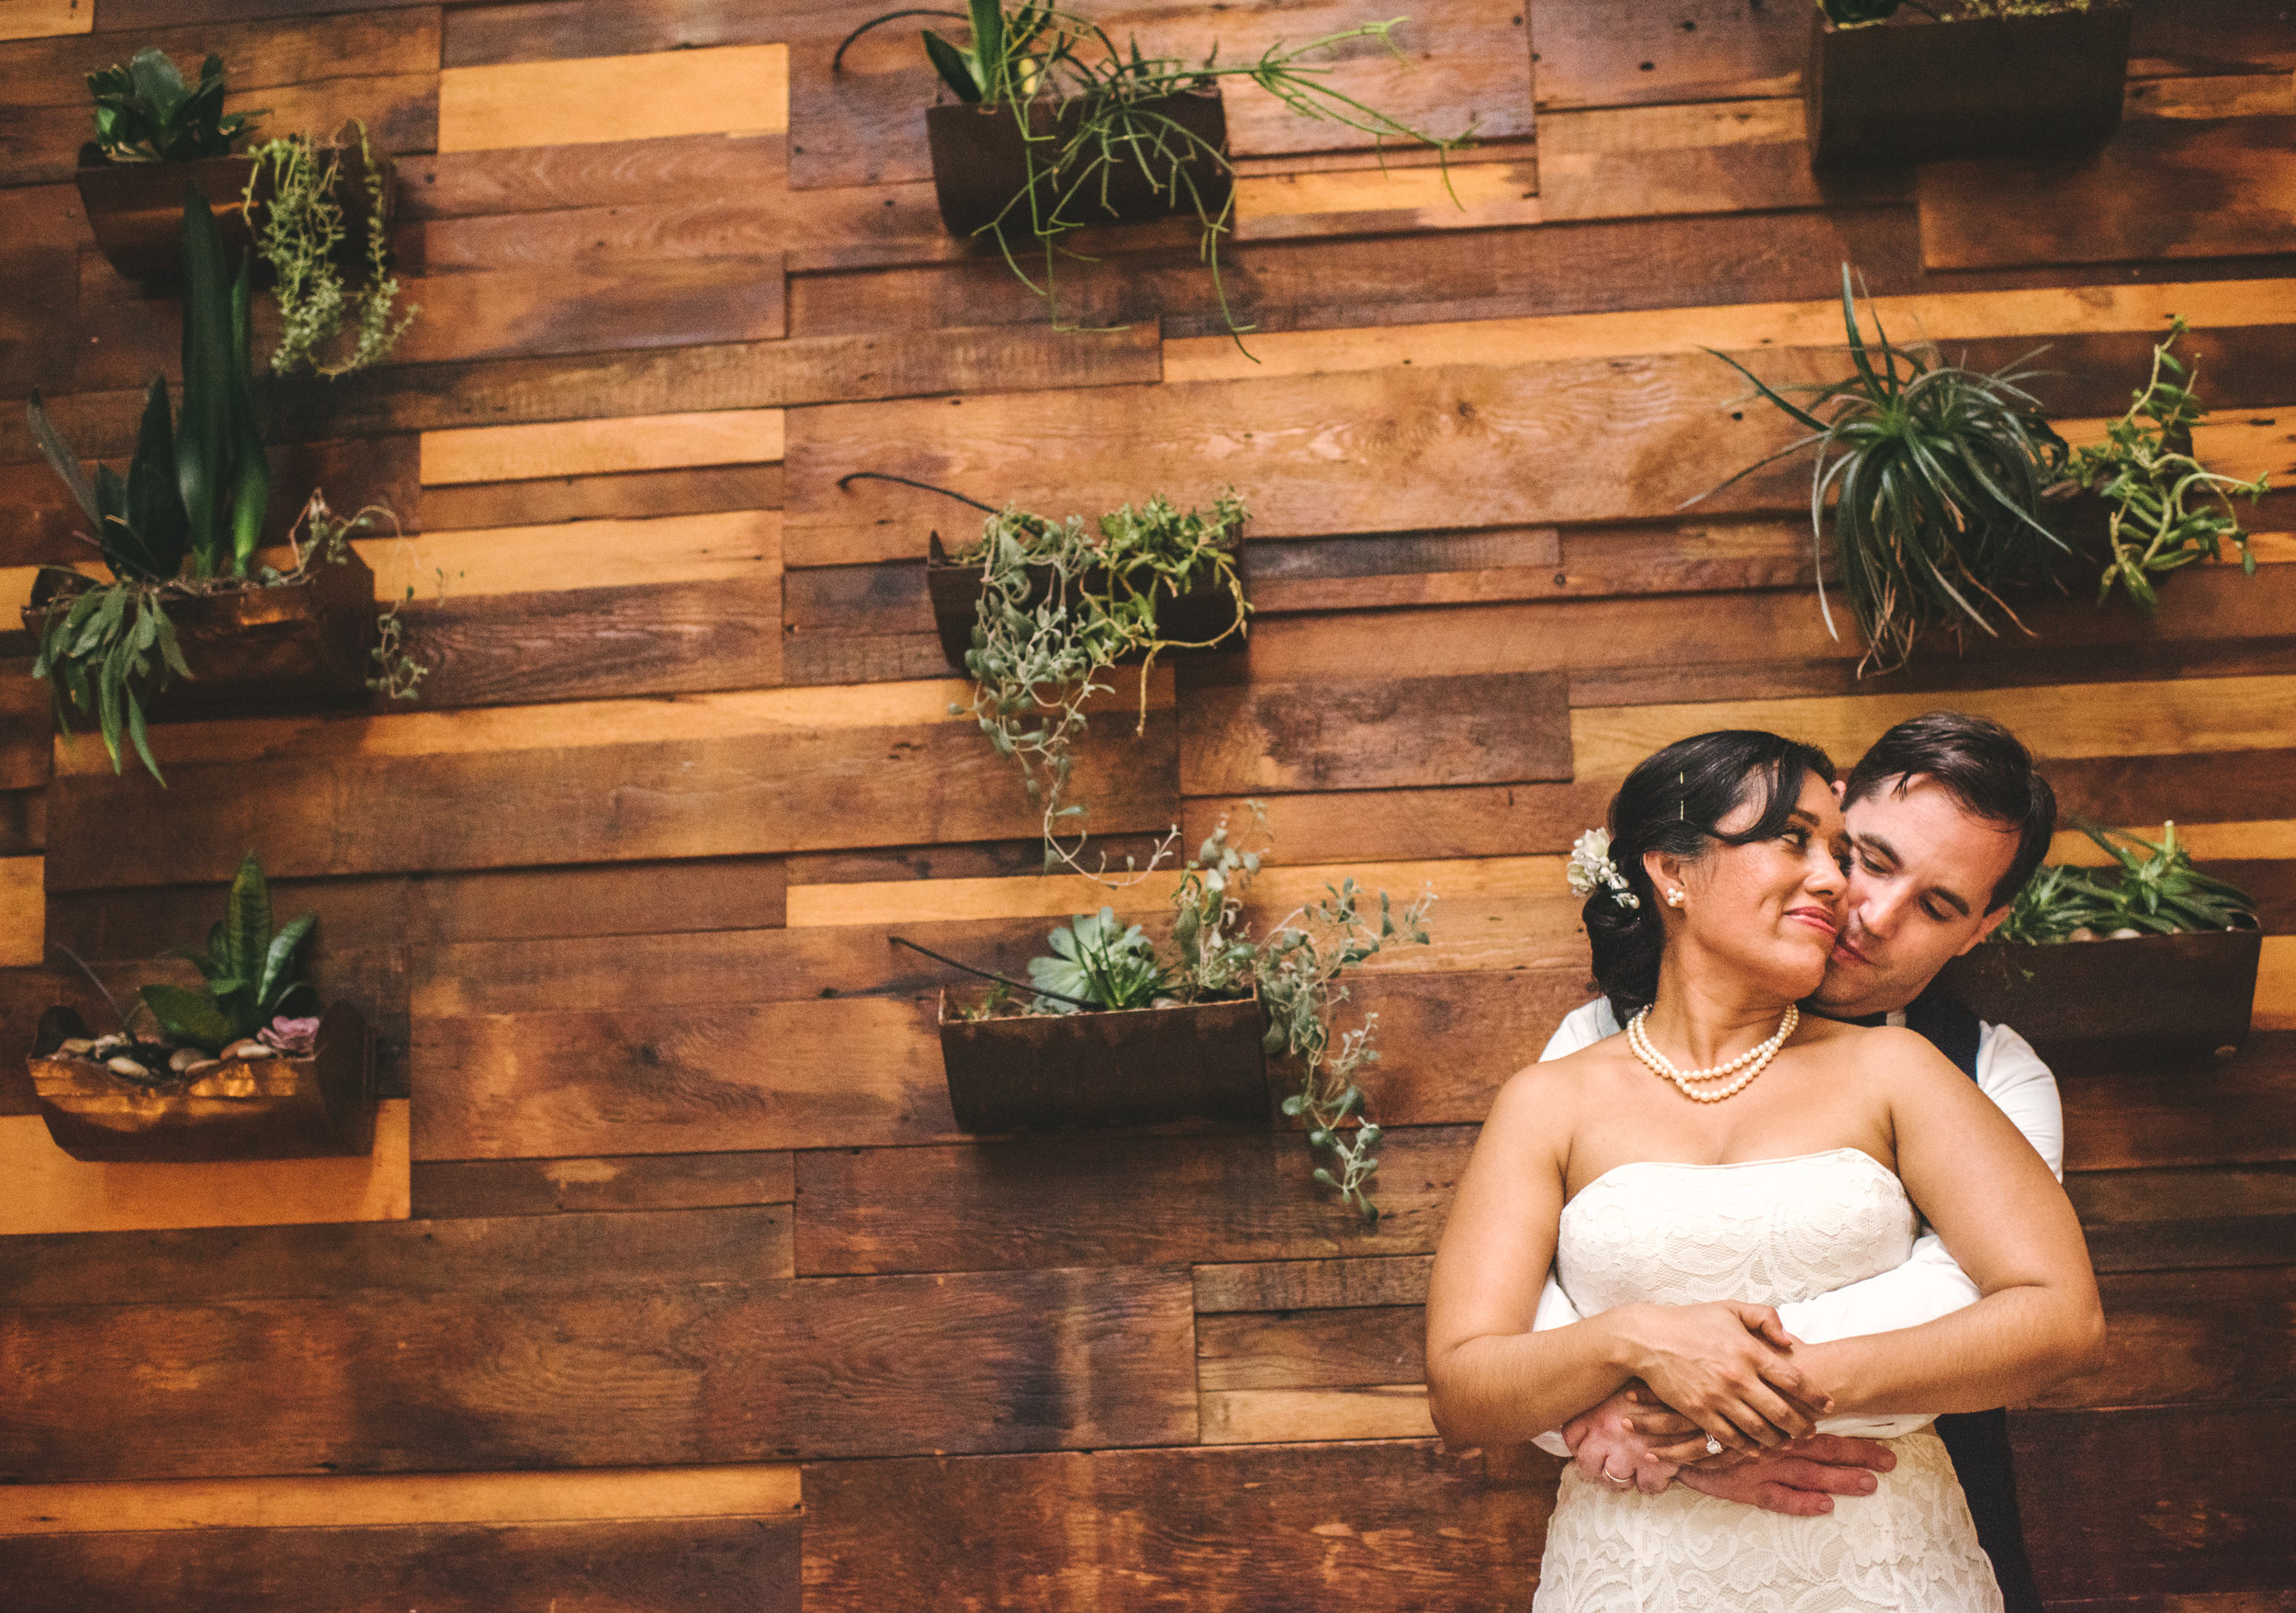 BROOKLYN WINERY WEDDING - TWOTWENTY by CHI-CHI AGBIM-518.jpg